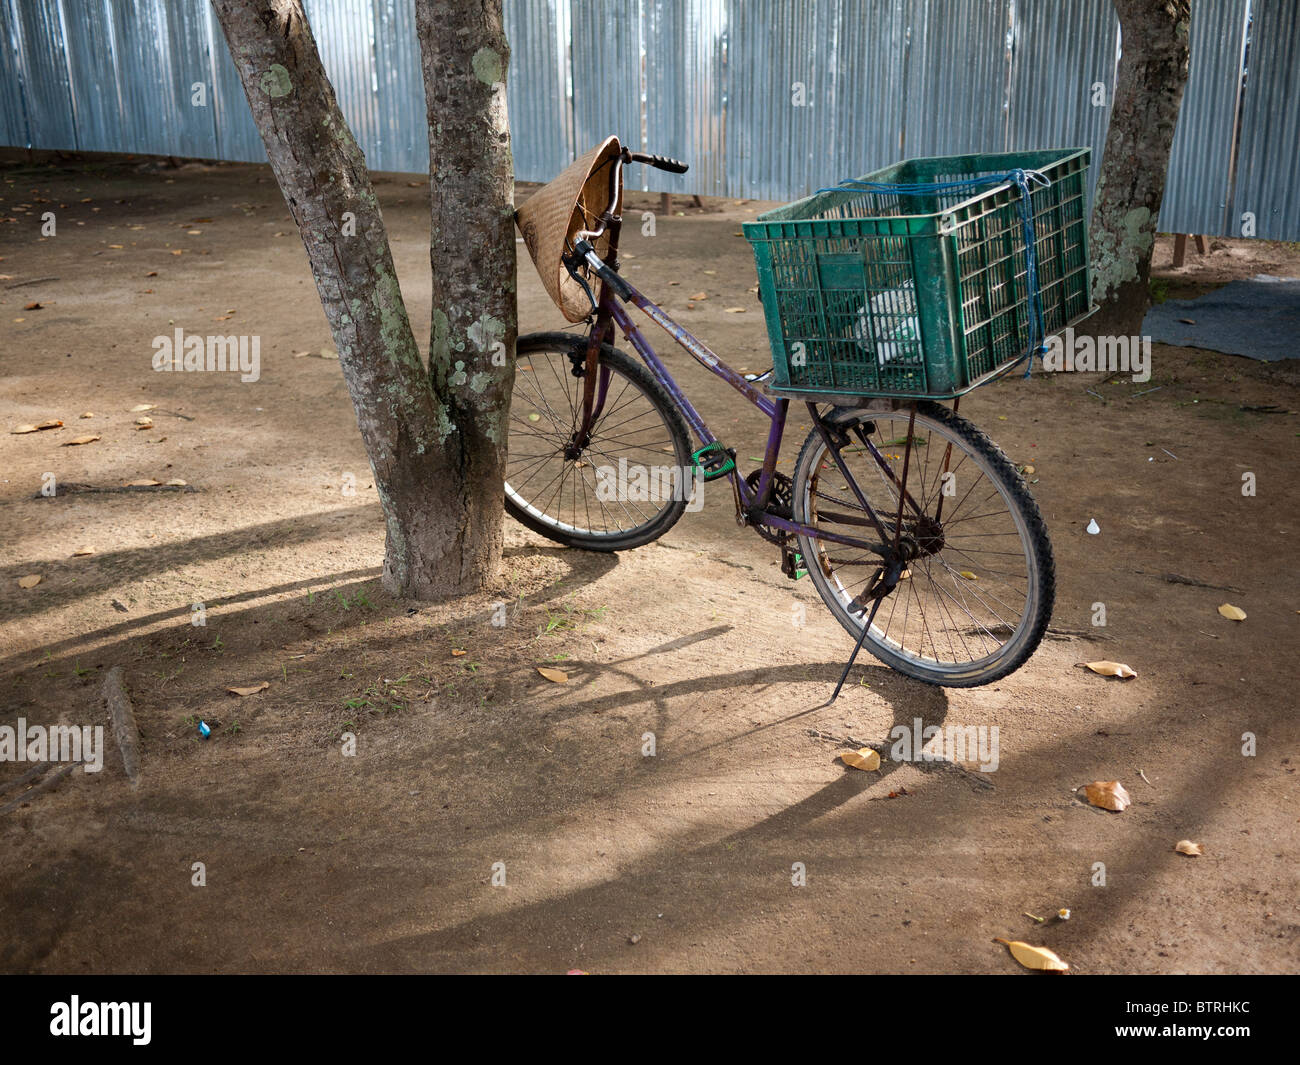 Cycle with carrier leaning against a tree sidelit, with conical straw hat on handlebars and plastic crate as a carrier - Stock Image